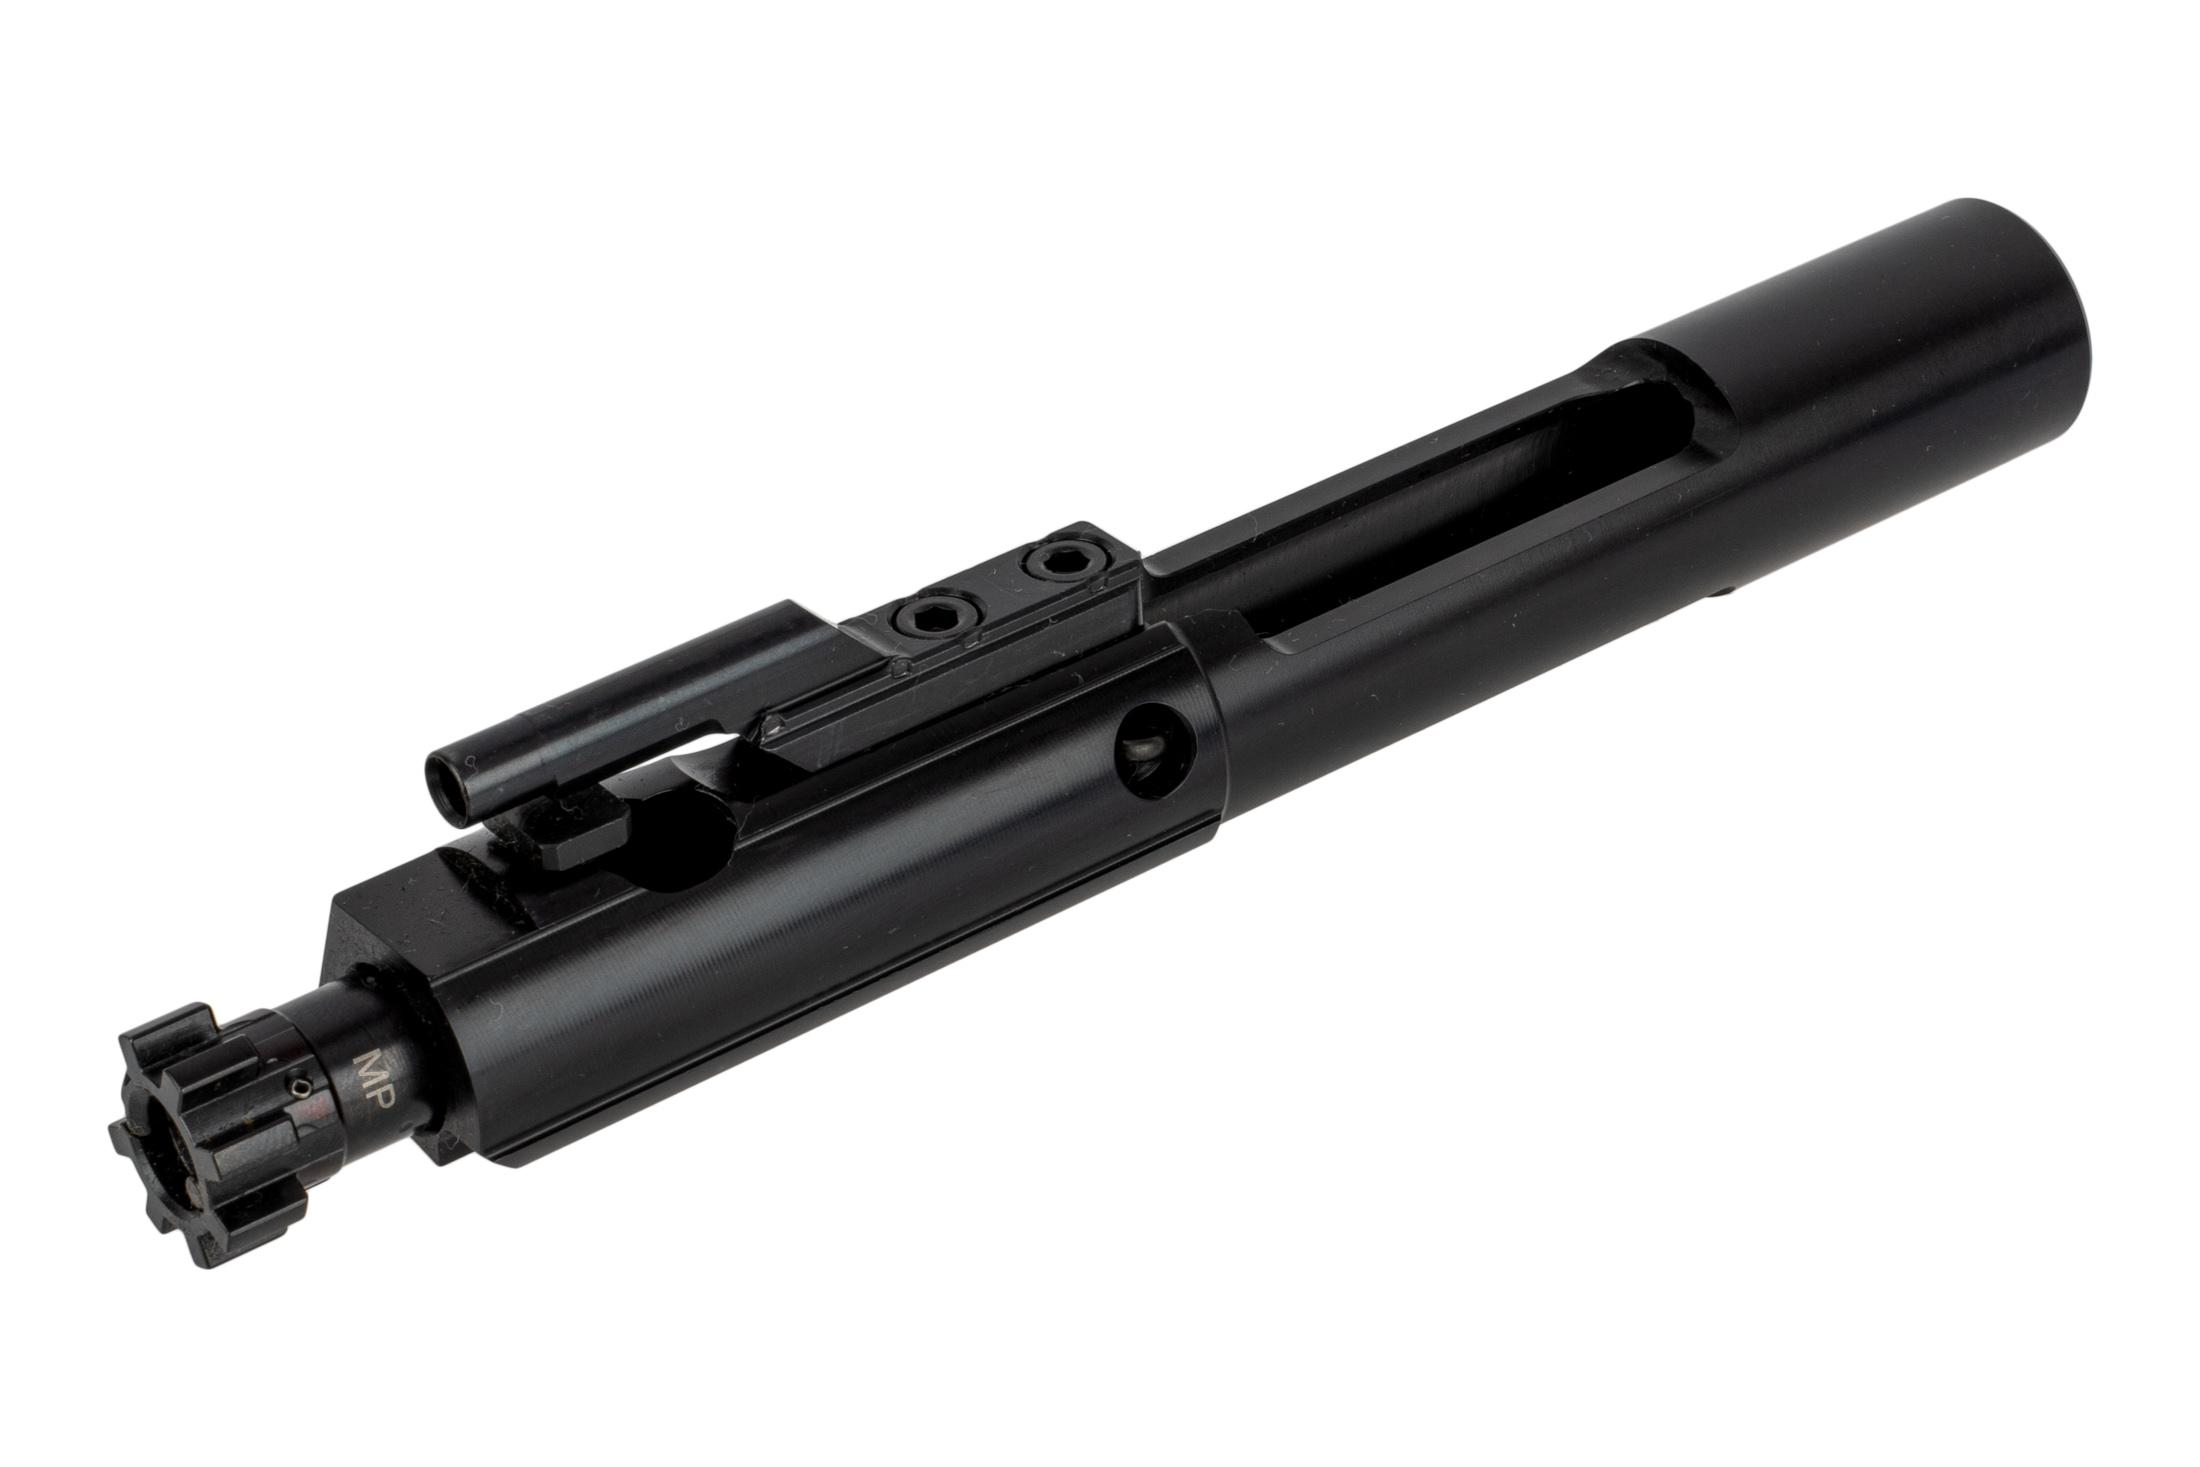 ALG Defense black nitrided M16 bolt carrier group has a Magnetic Particle Inspected bolt assembly